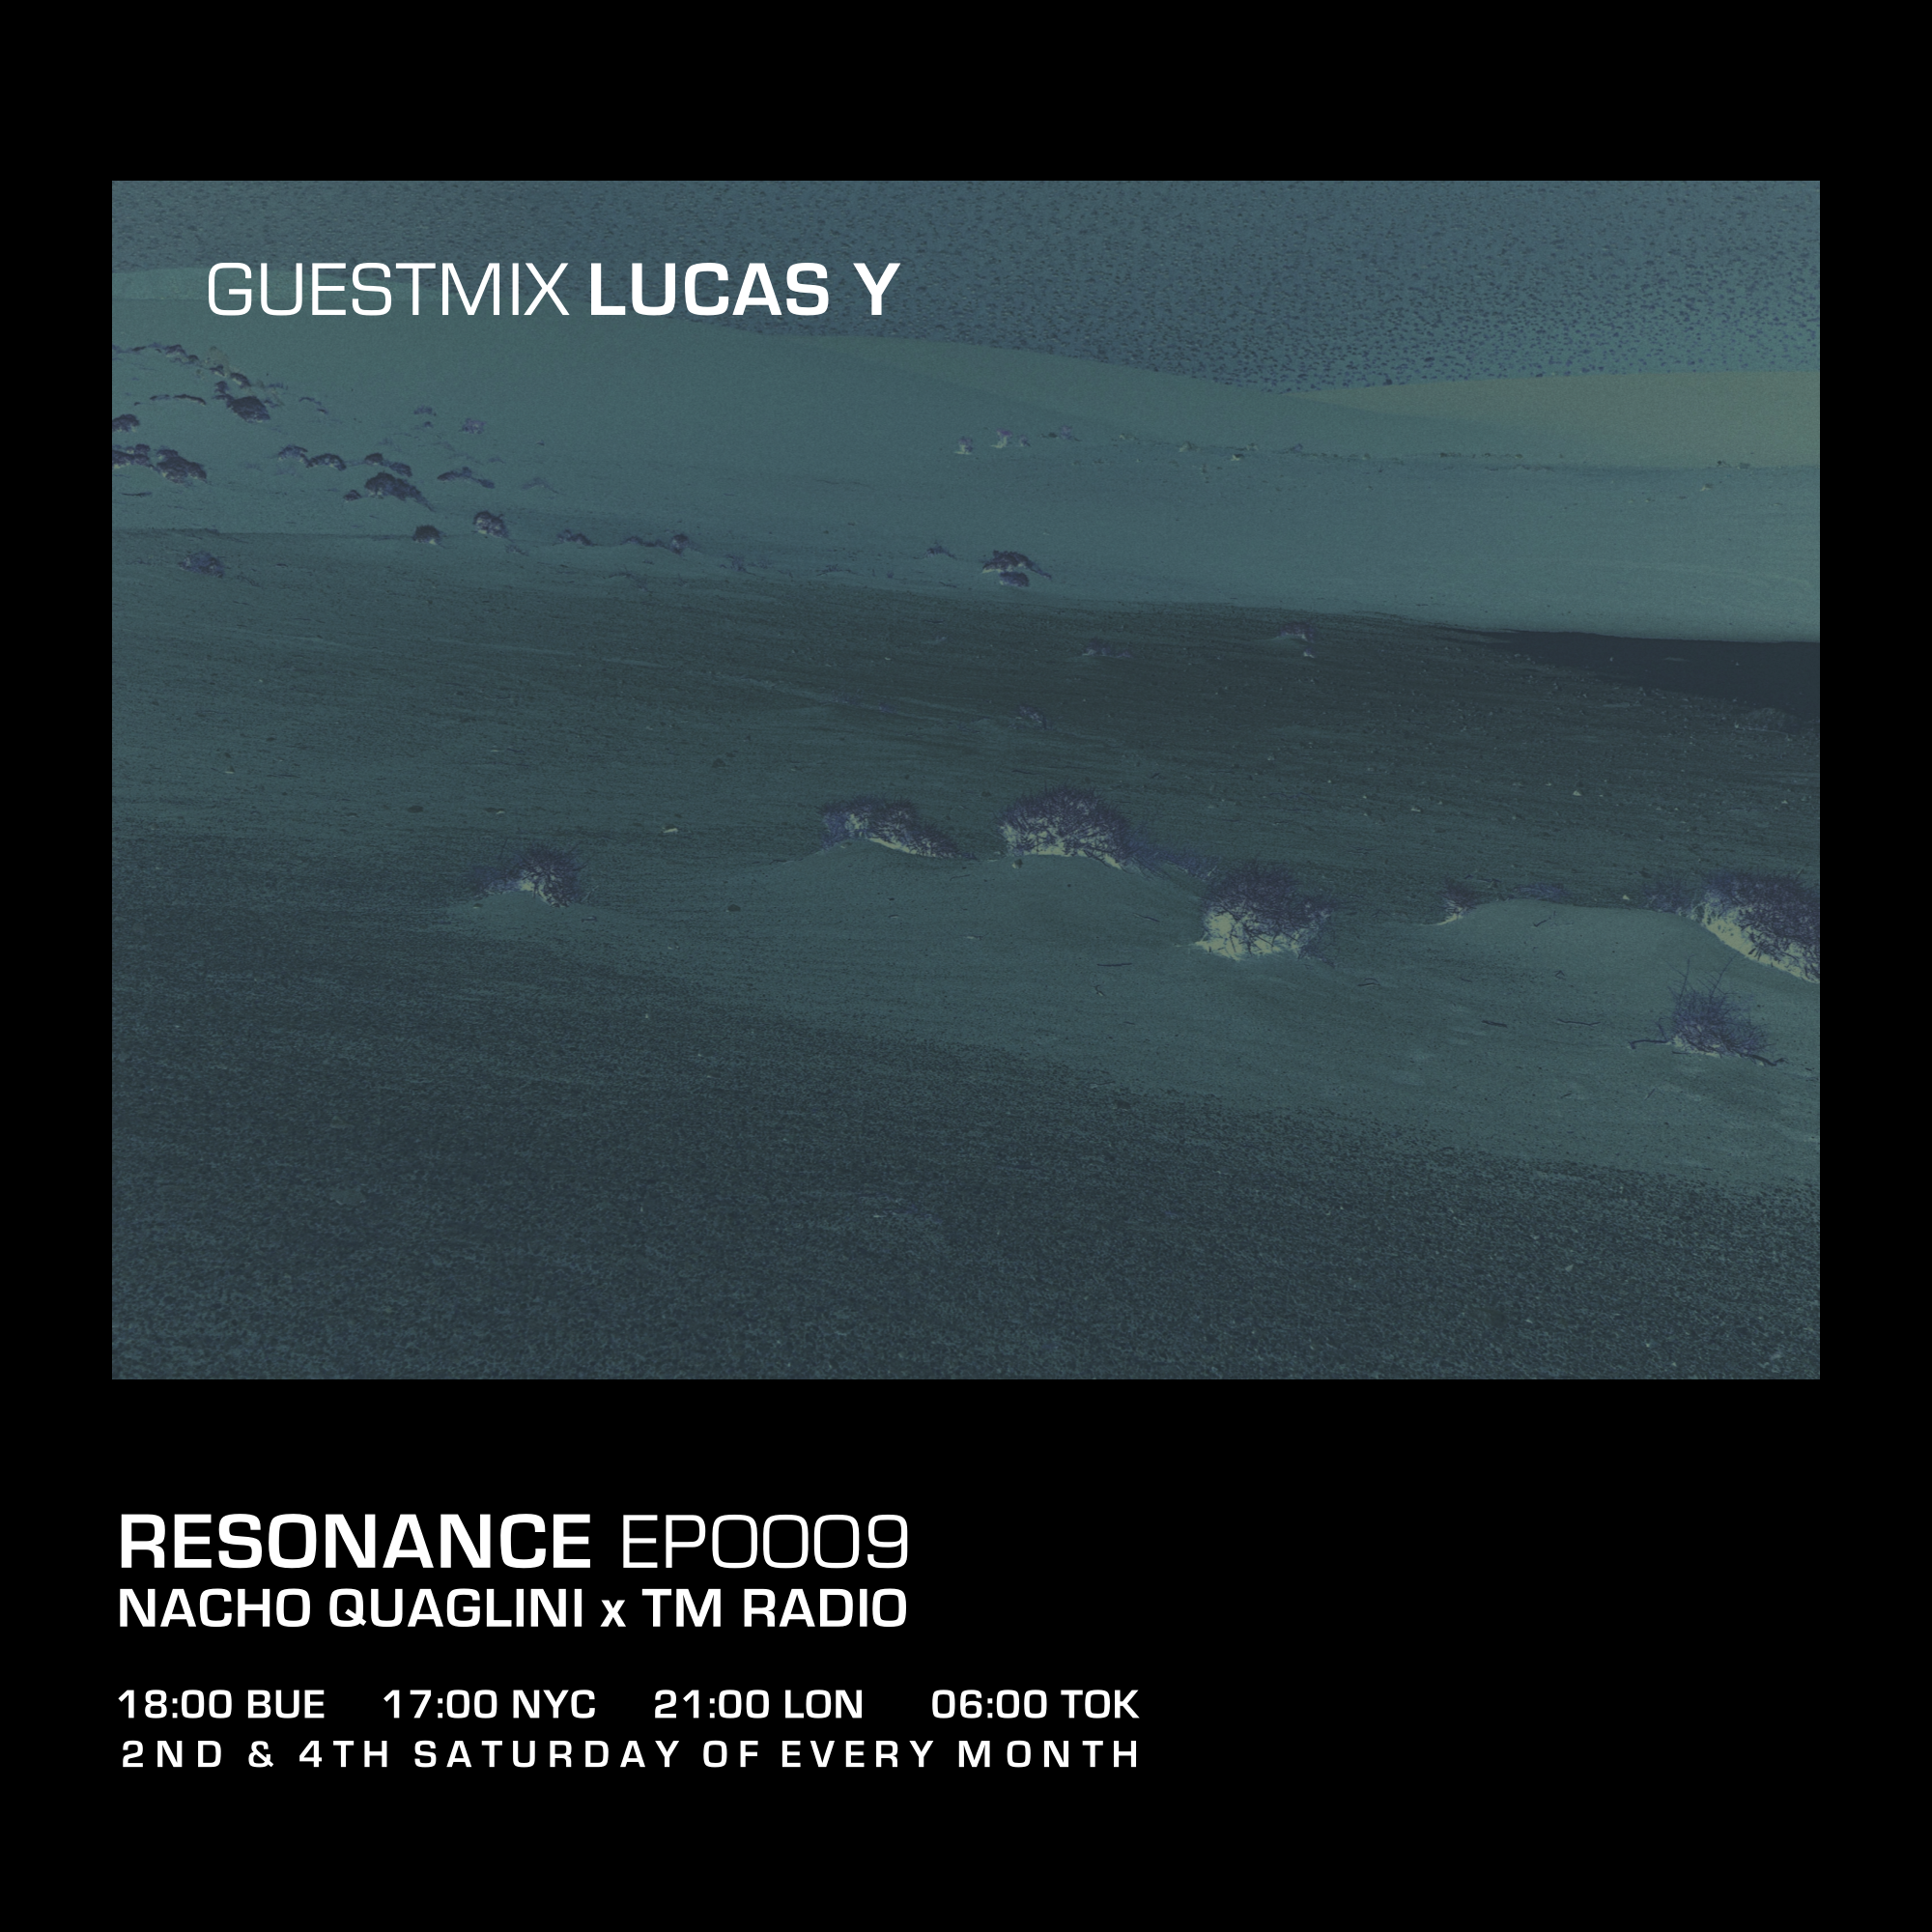 Resonance :: Resonance / Ep. 0009 / December 2020 / Guestmix: Lucas Y (aired on December 26th, 2020) banner logo